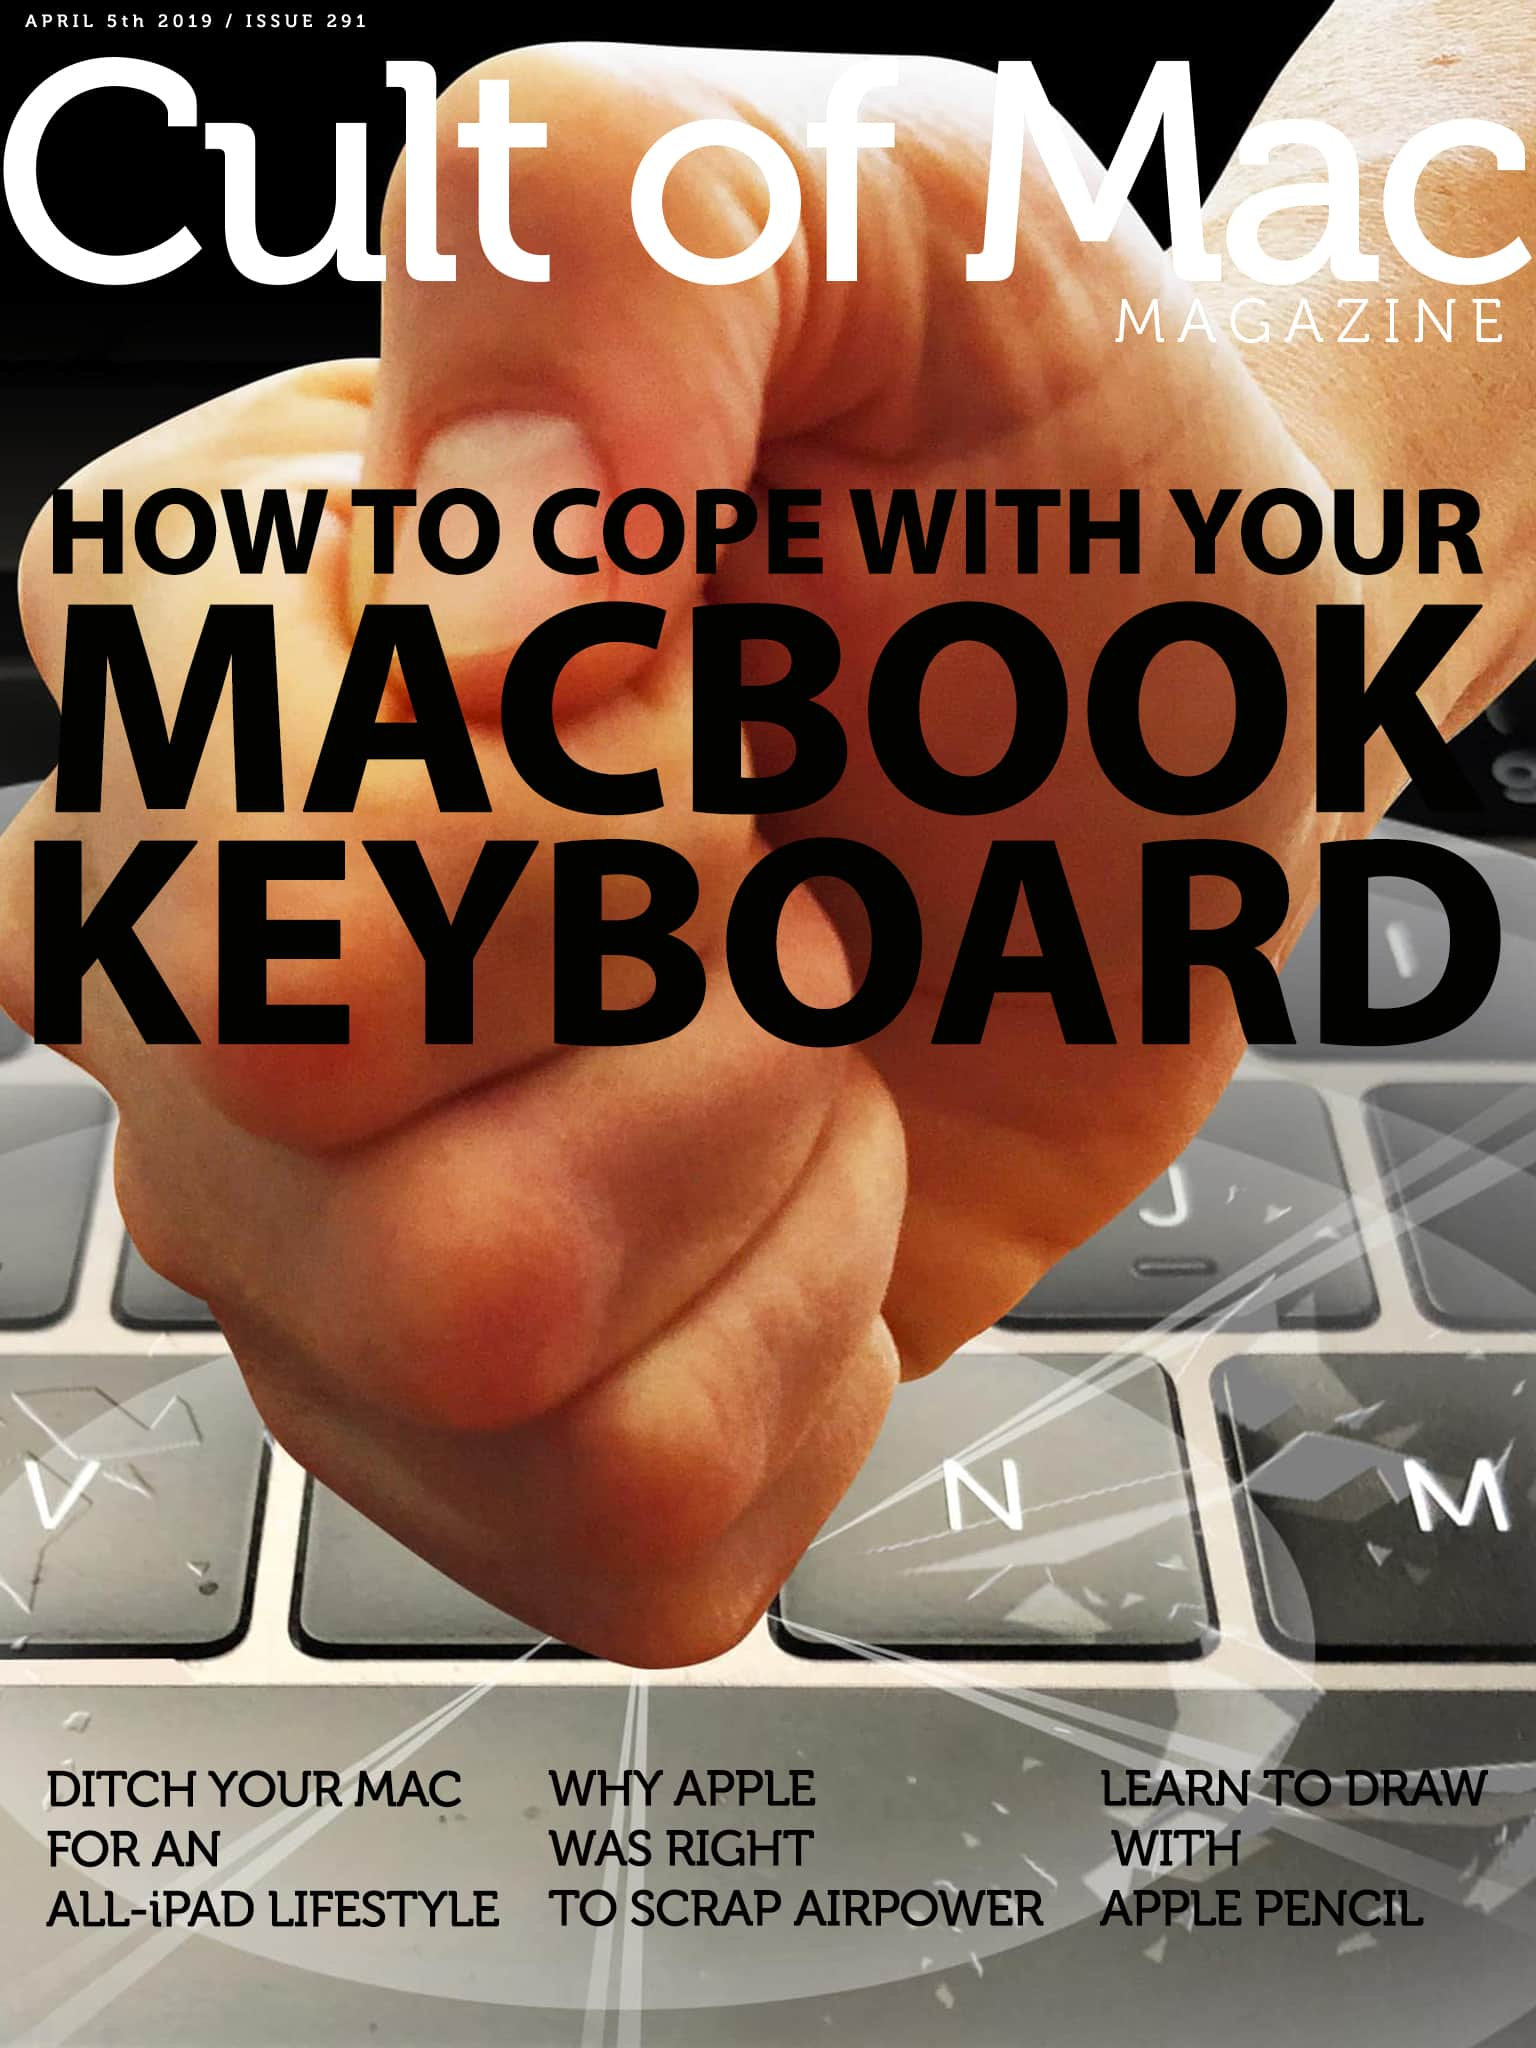 No, pounding your stuck MacBook keyboard in rage is not the answer.